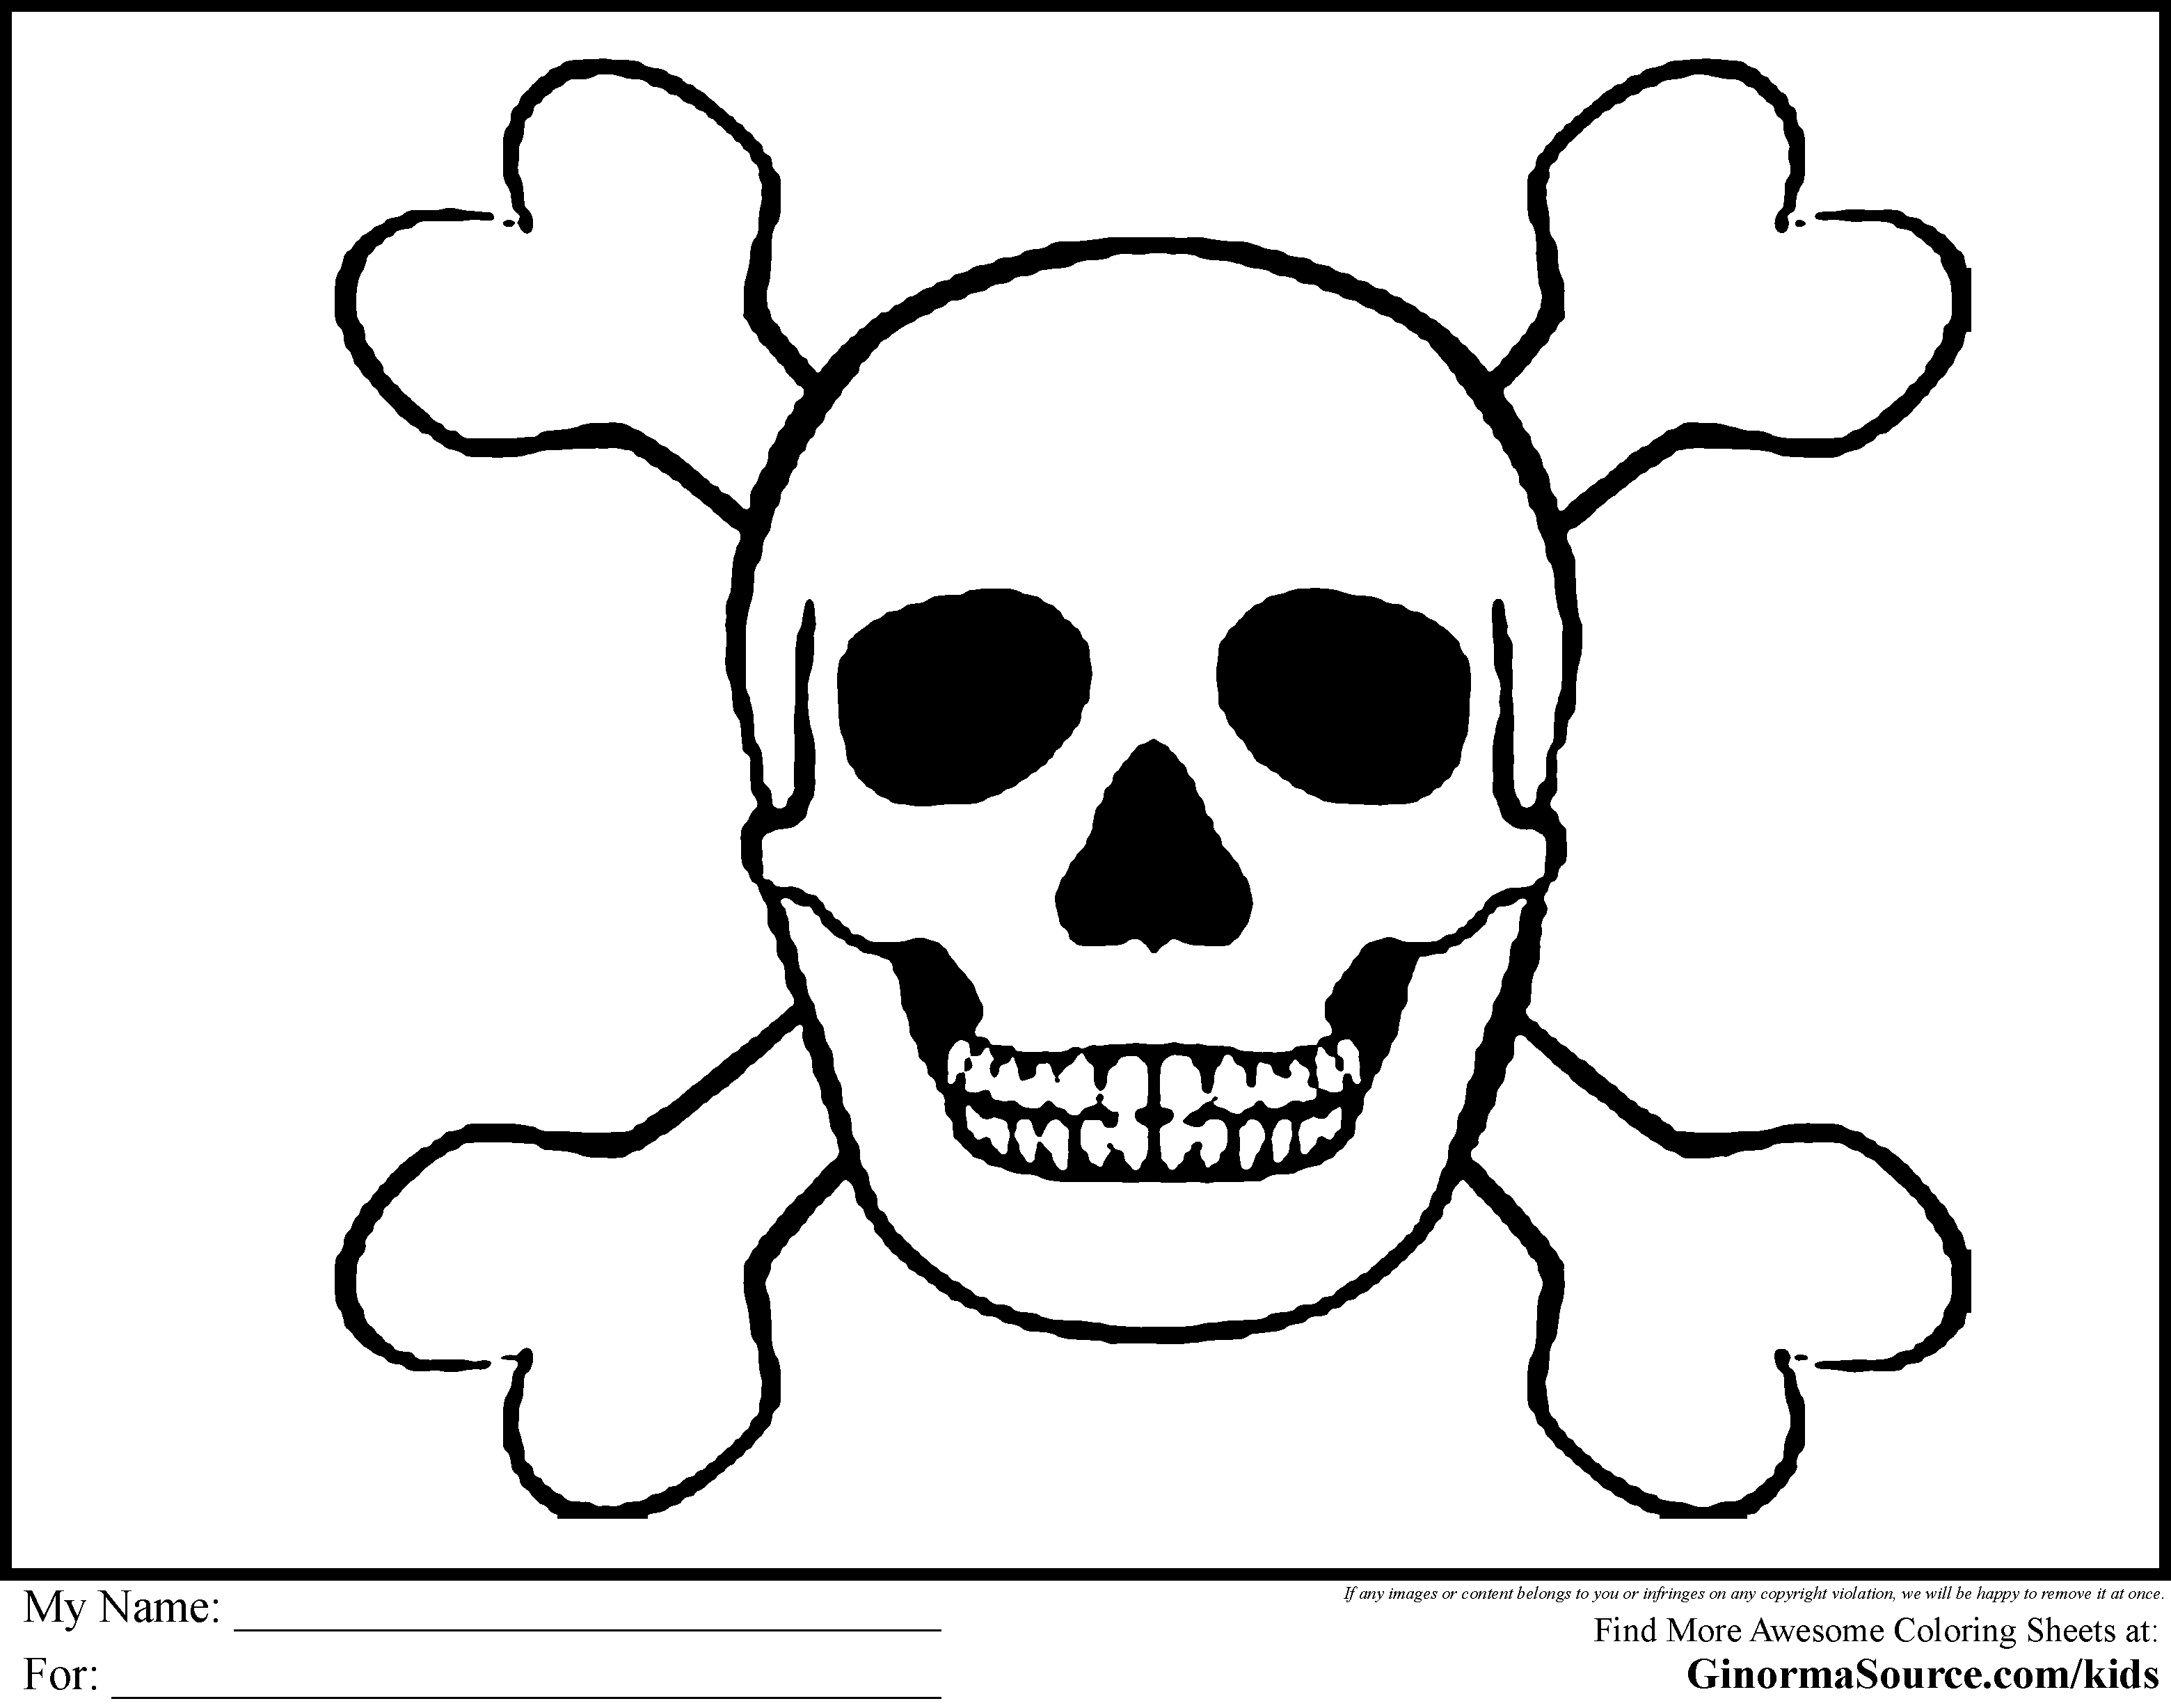 Pirate coloring pages to download